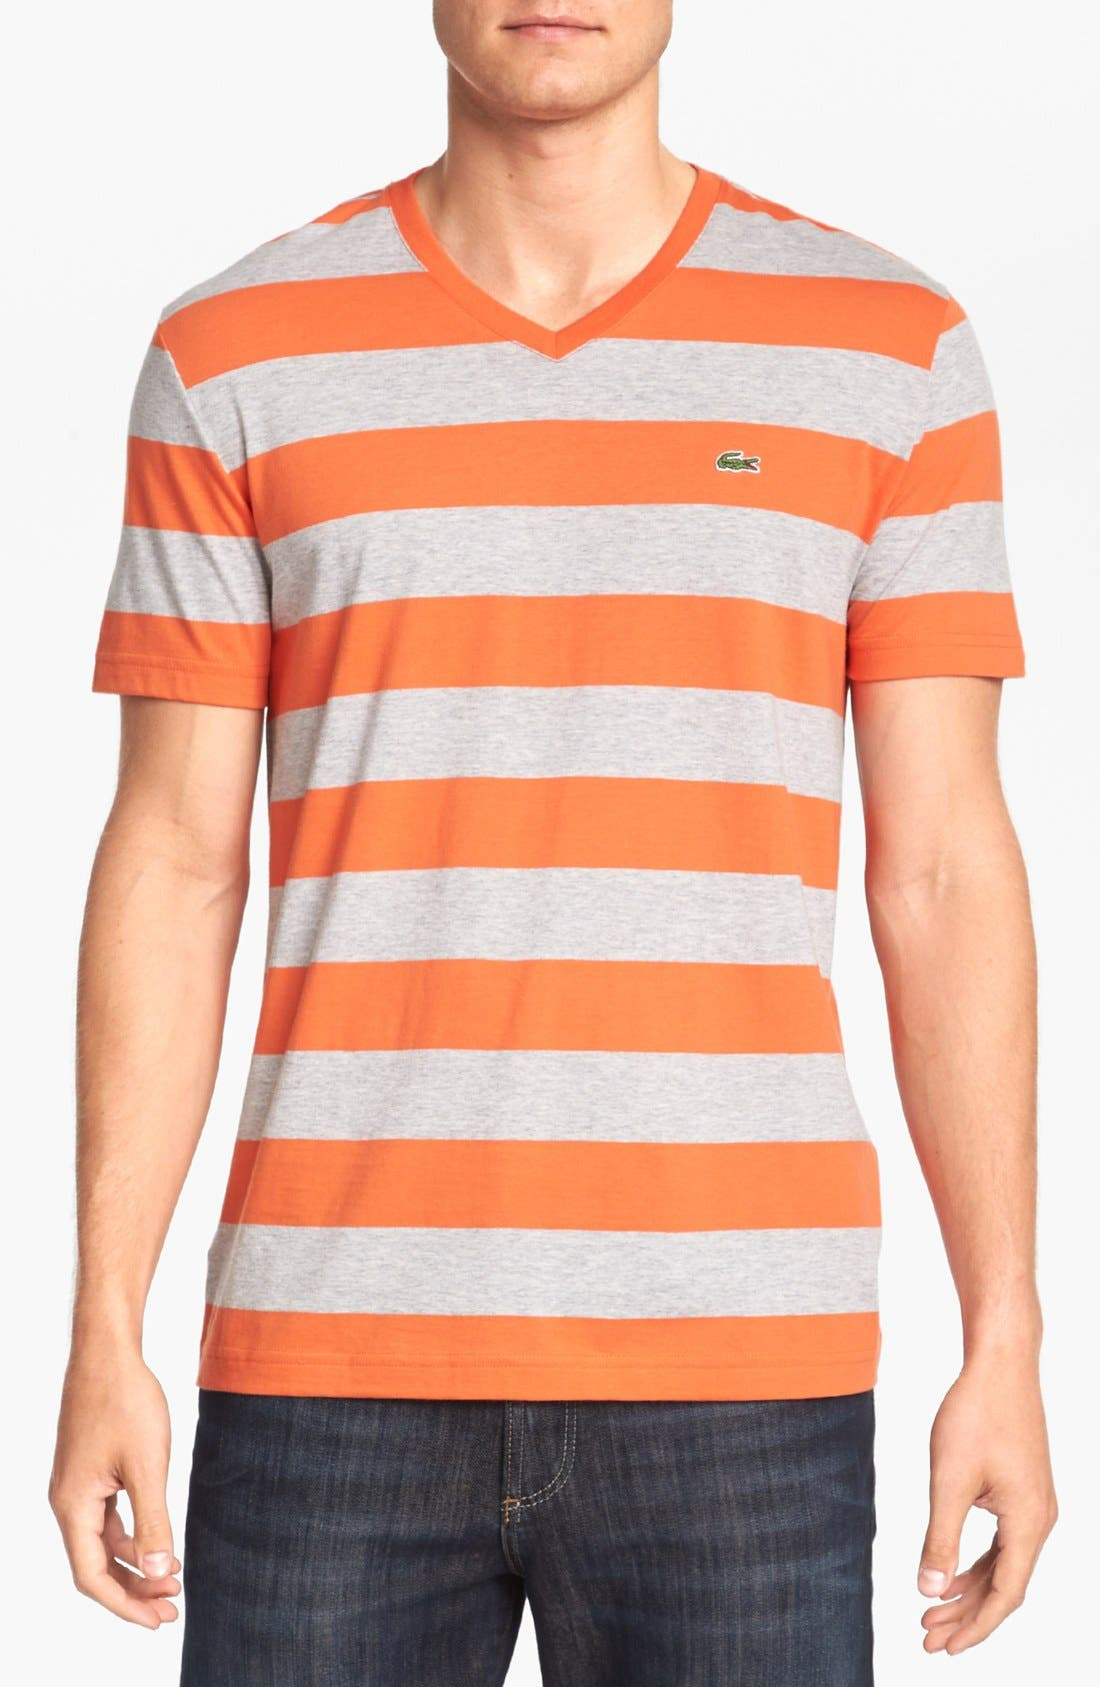 Alternate Image 1 Selected - Lacoste Stripe V-Neck T-Shirt